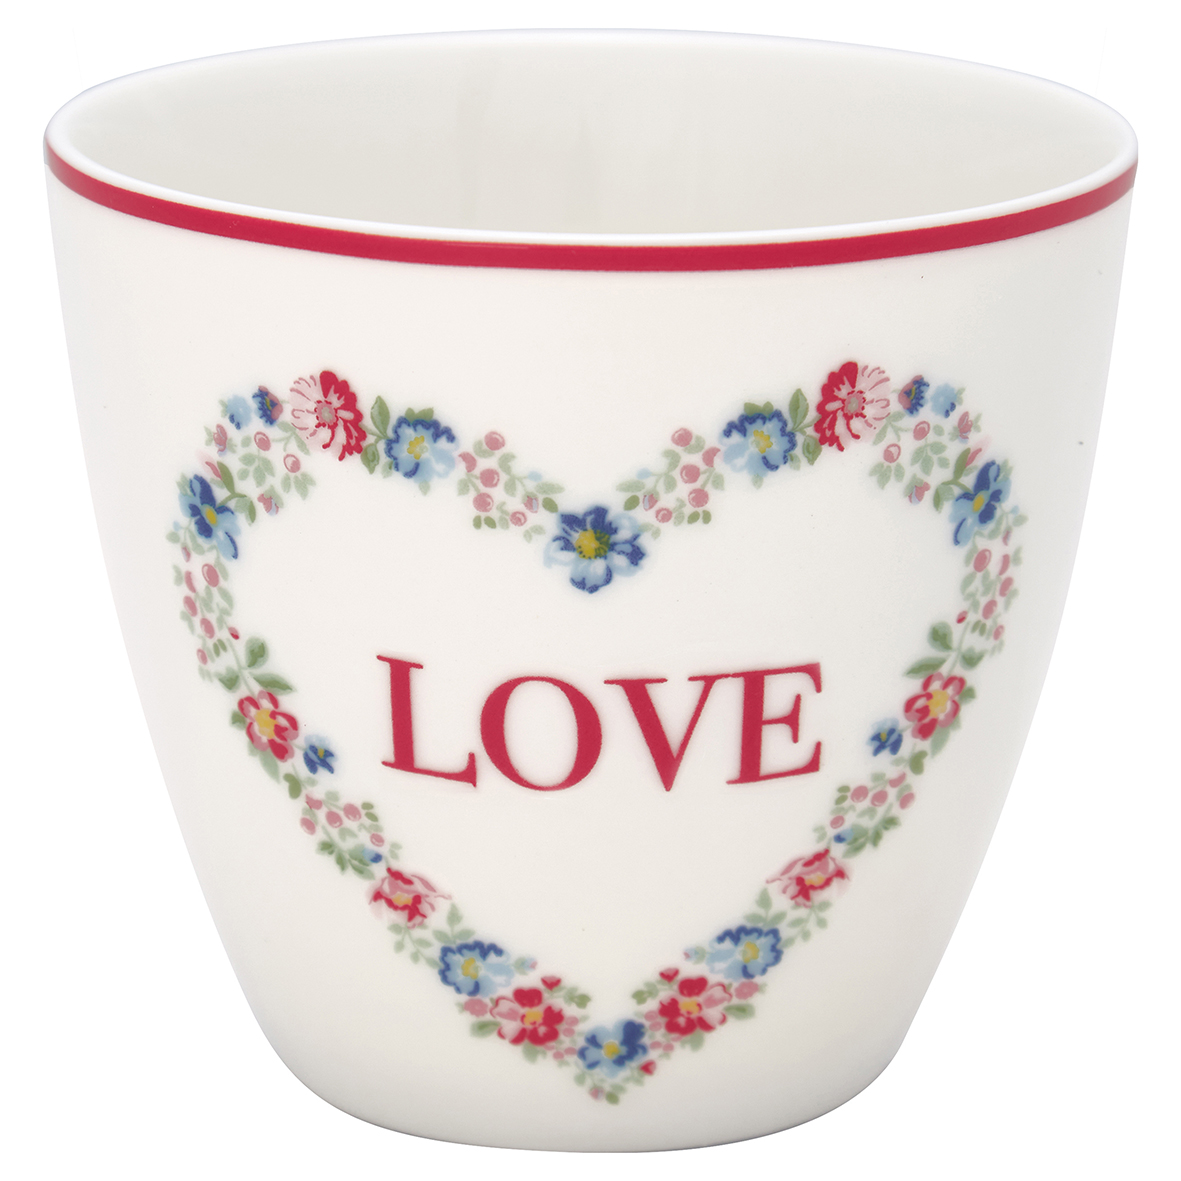 Latte Cup - Heart love white - Greengate